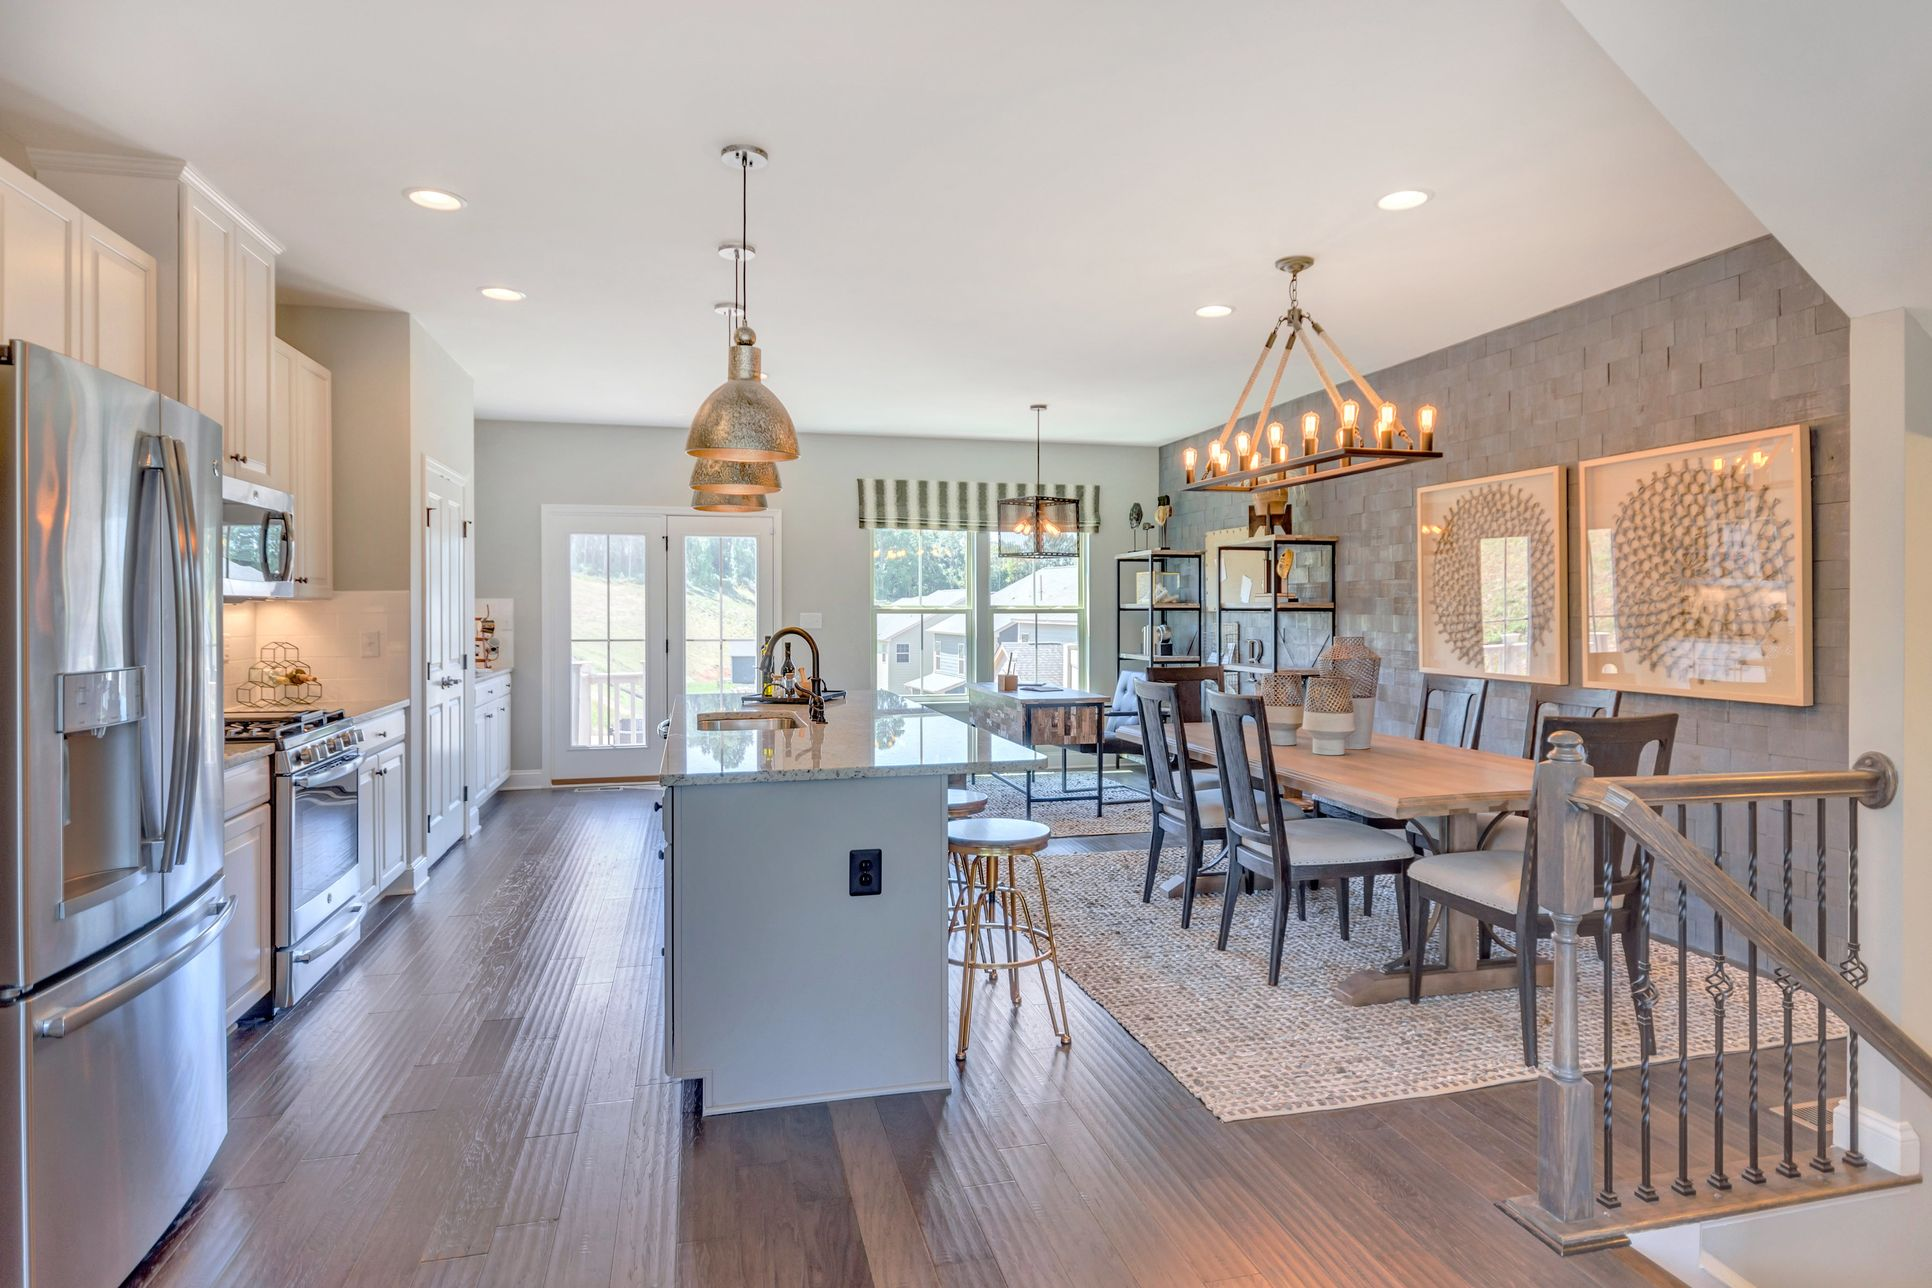 WELCOME TO NORTH LANDING HEIGHTS--THE HOTTEST NEW HOMES IN VIRGINIA BEACH!